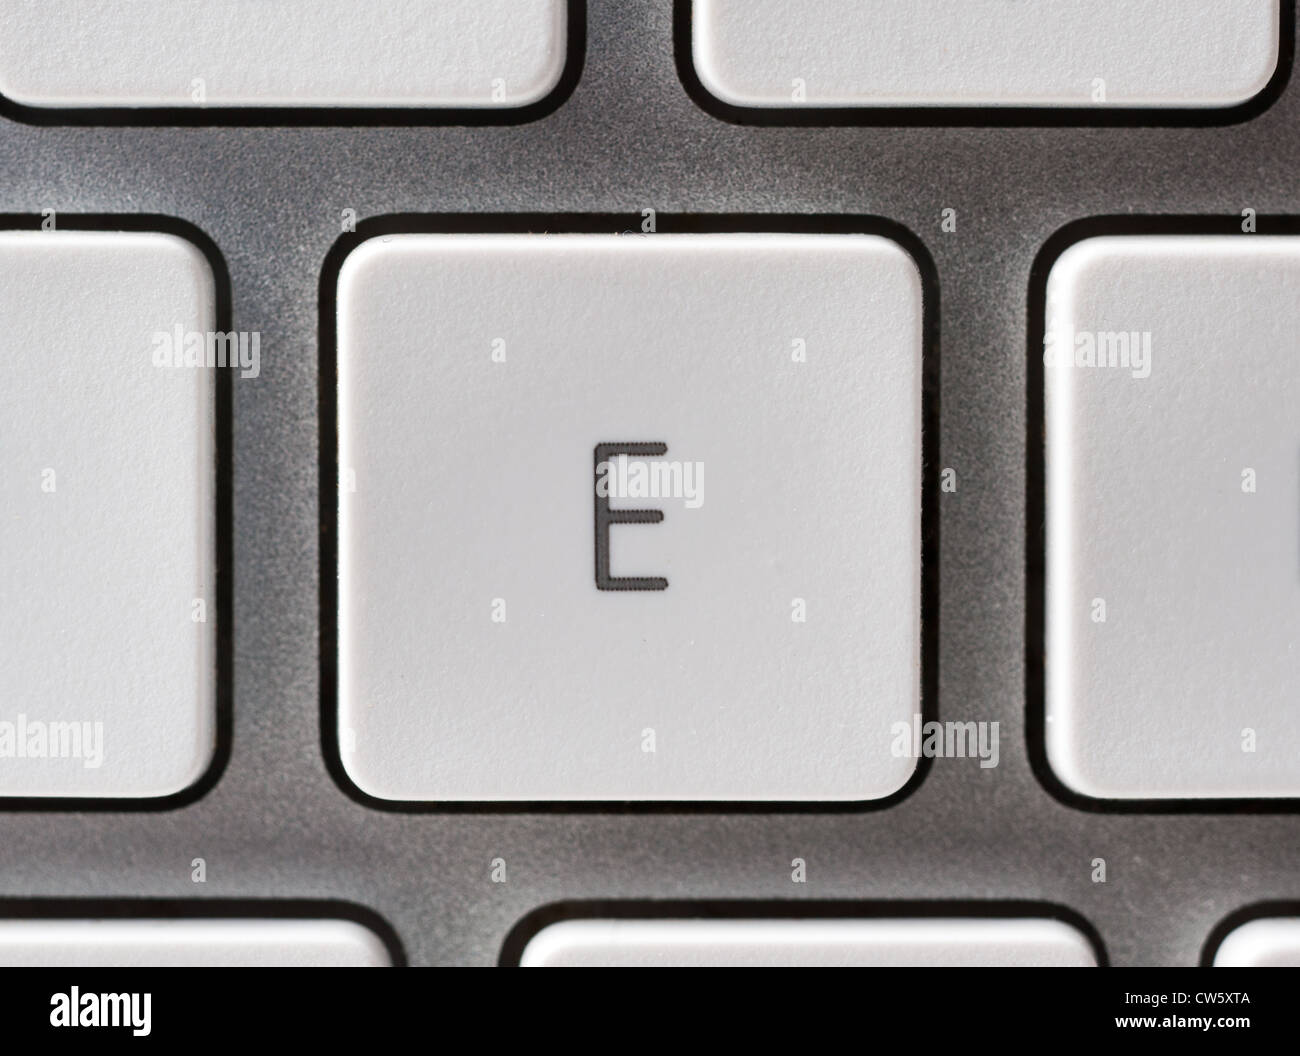 Letter e on an apple keyboard stock photo 49917962 alamy letter e on an apple keyboard biocorpaavc Images